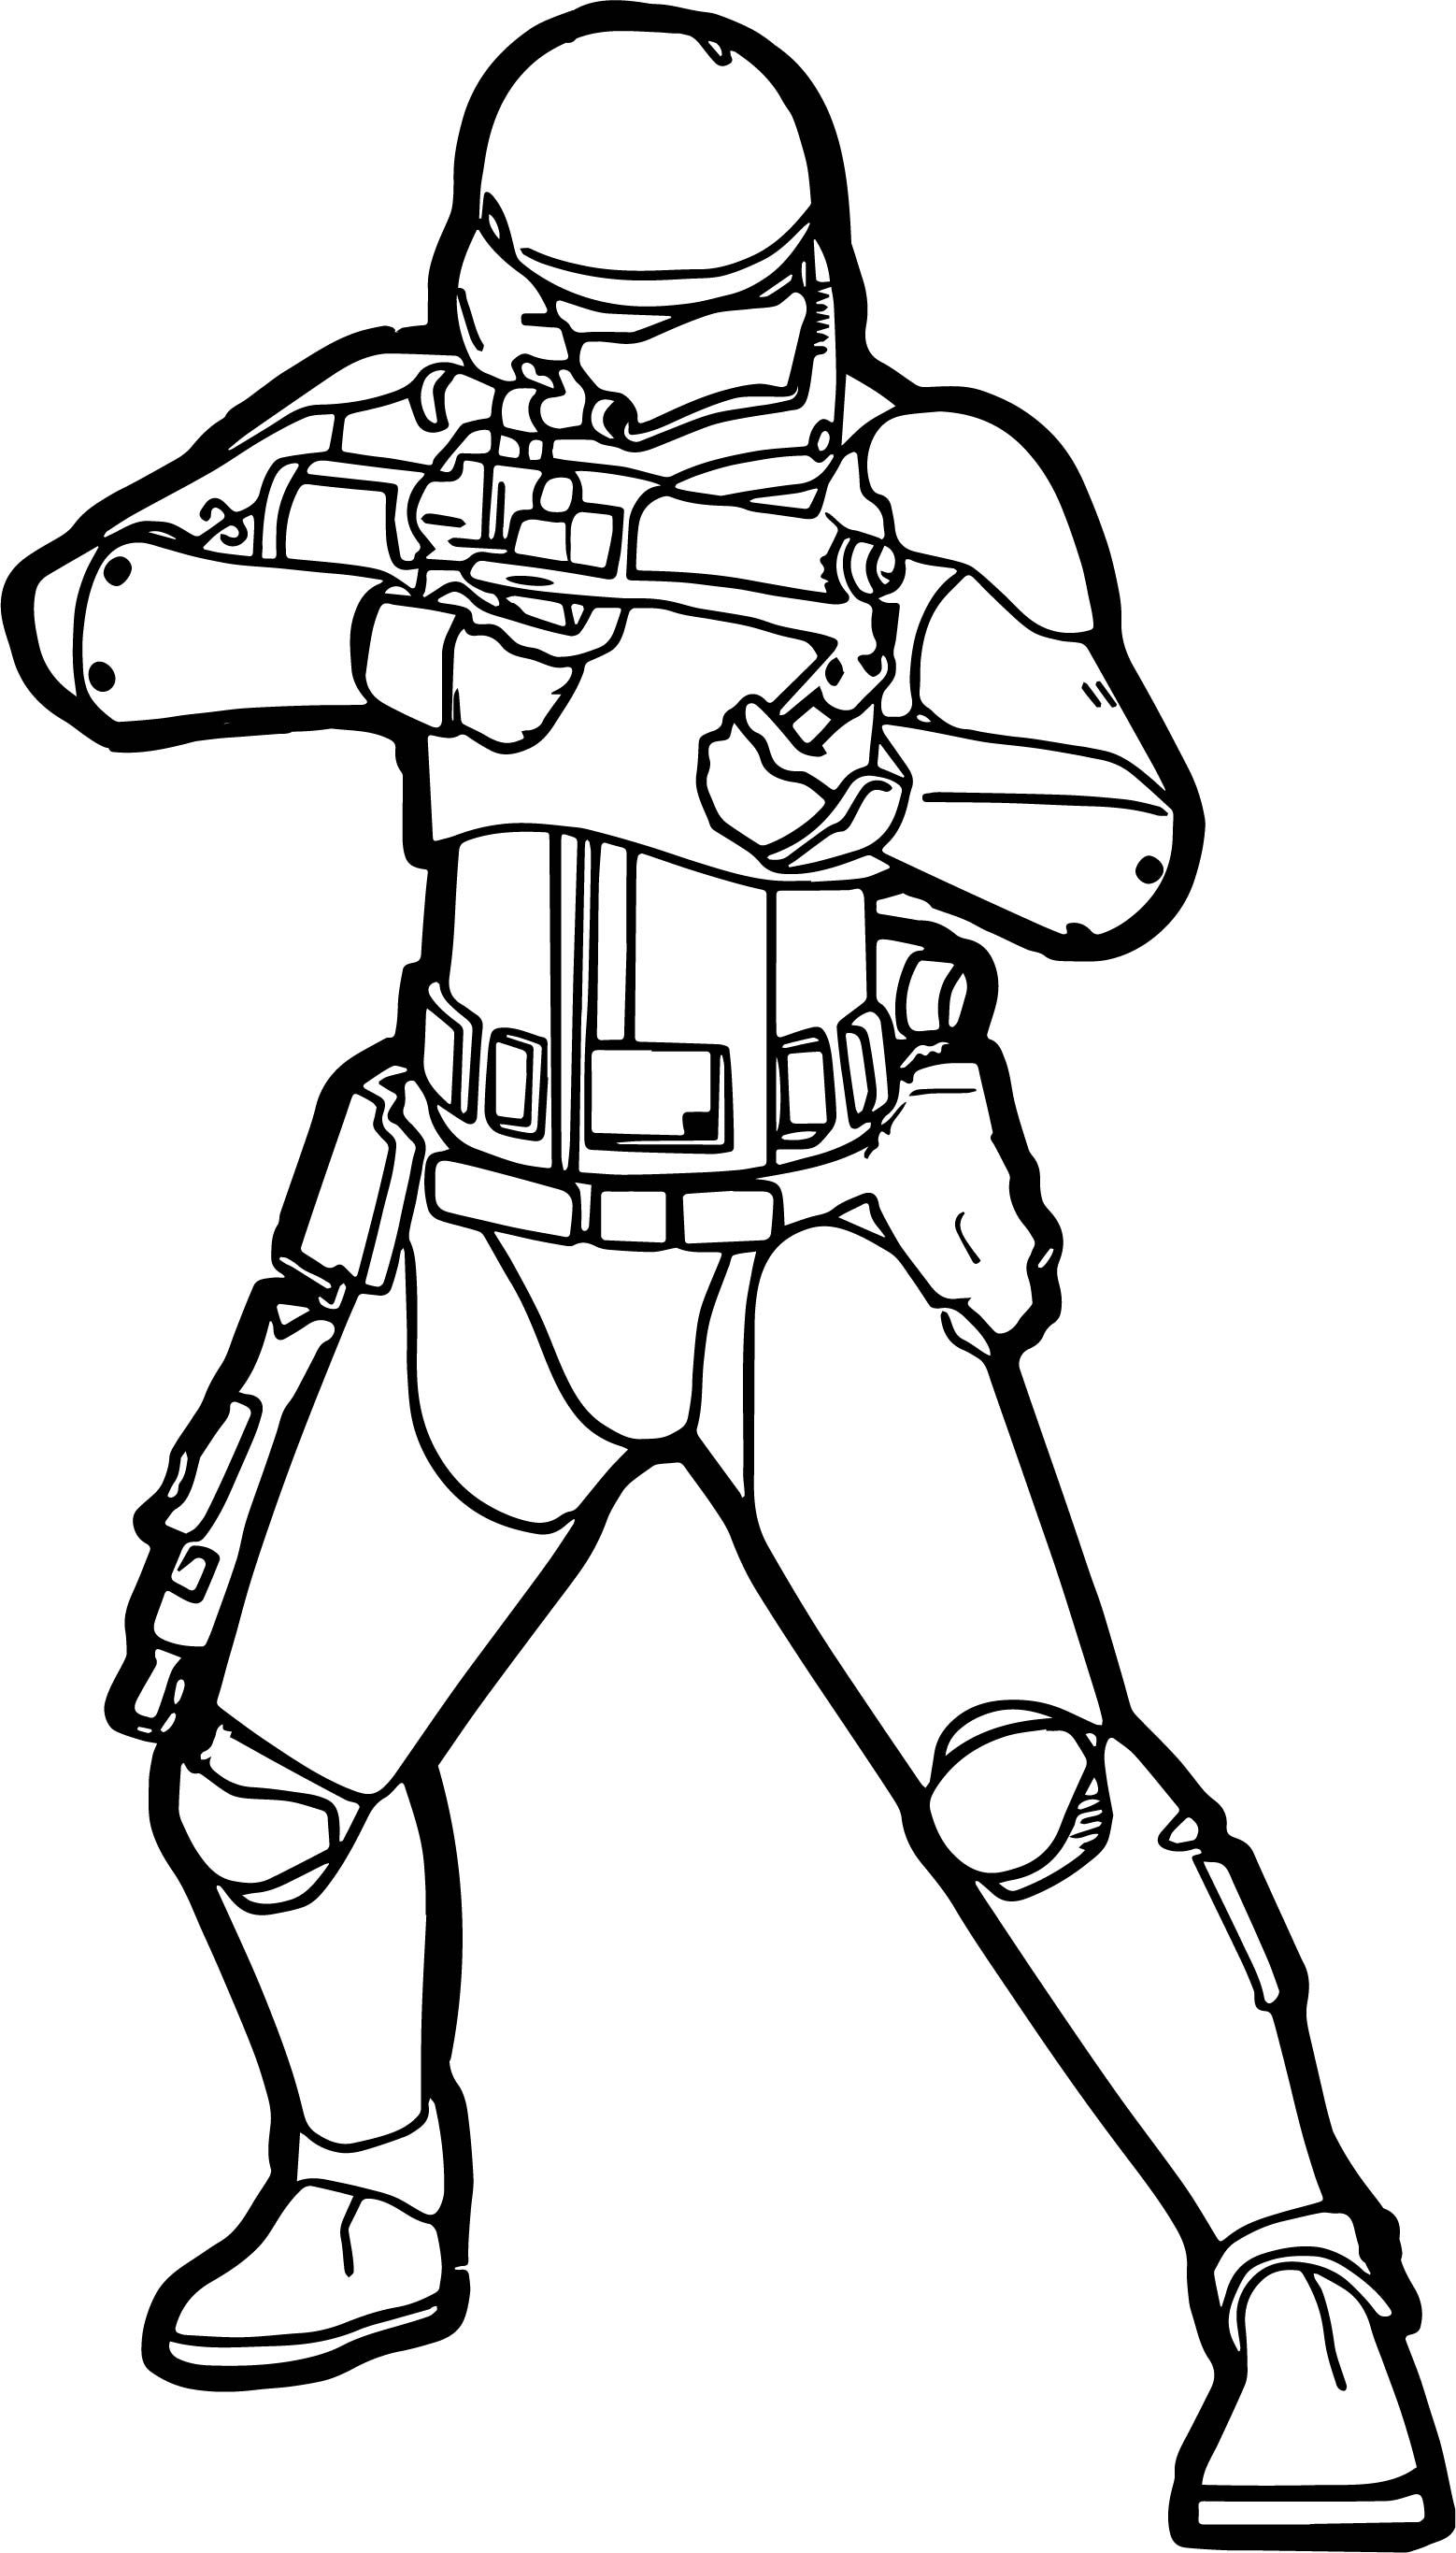 cool Star Wars The Force Awakens Stormtrooper Coloring